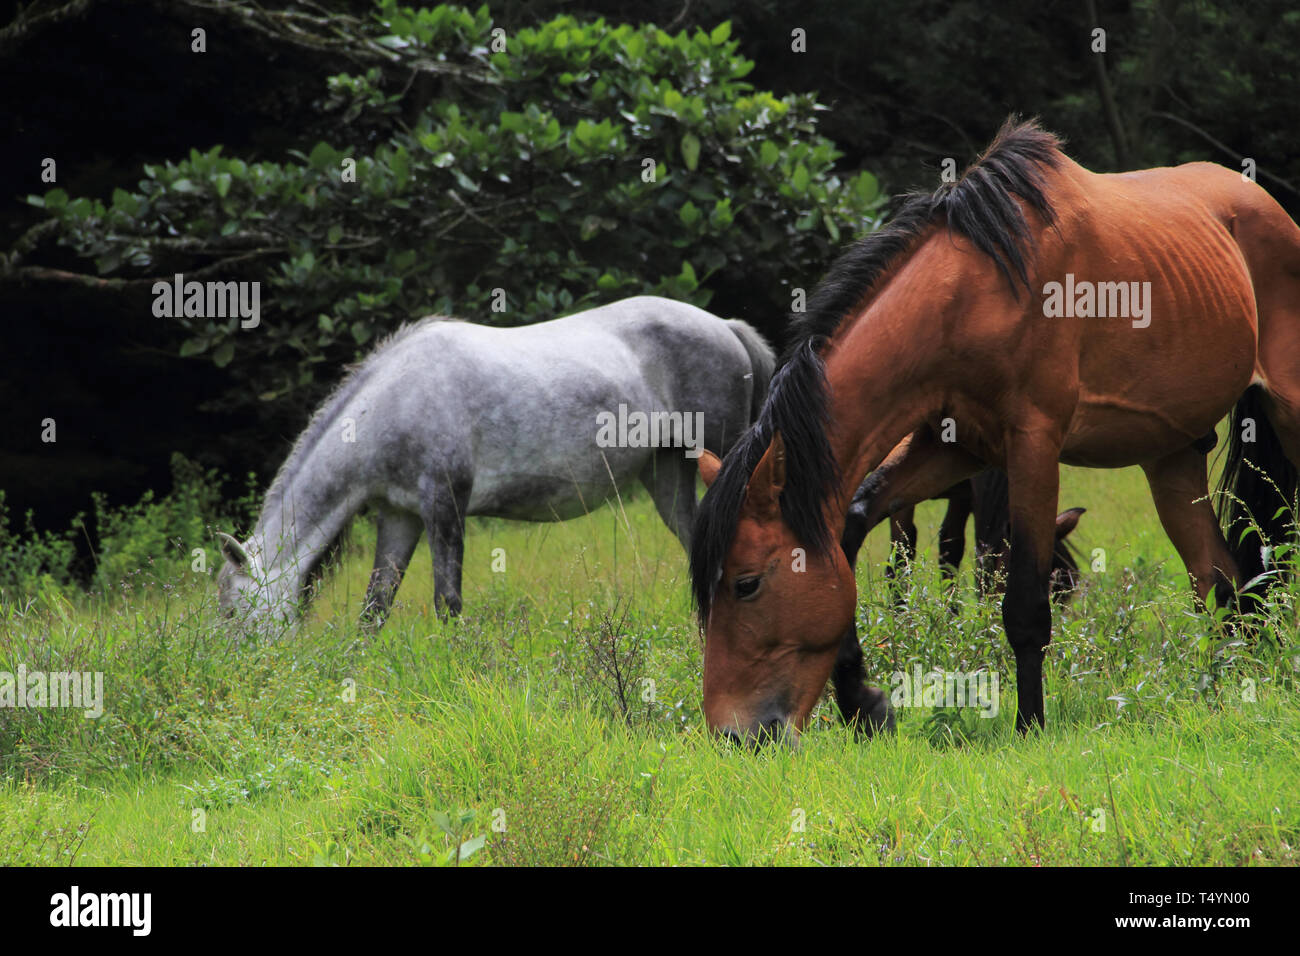 Two horses grazing in the countrysides of Merida. - Stock Image